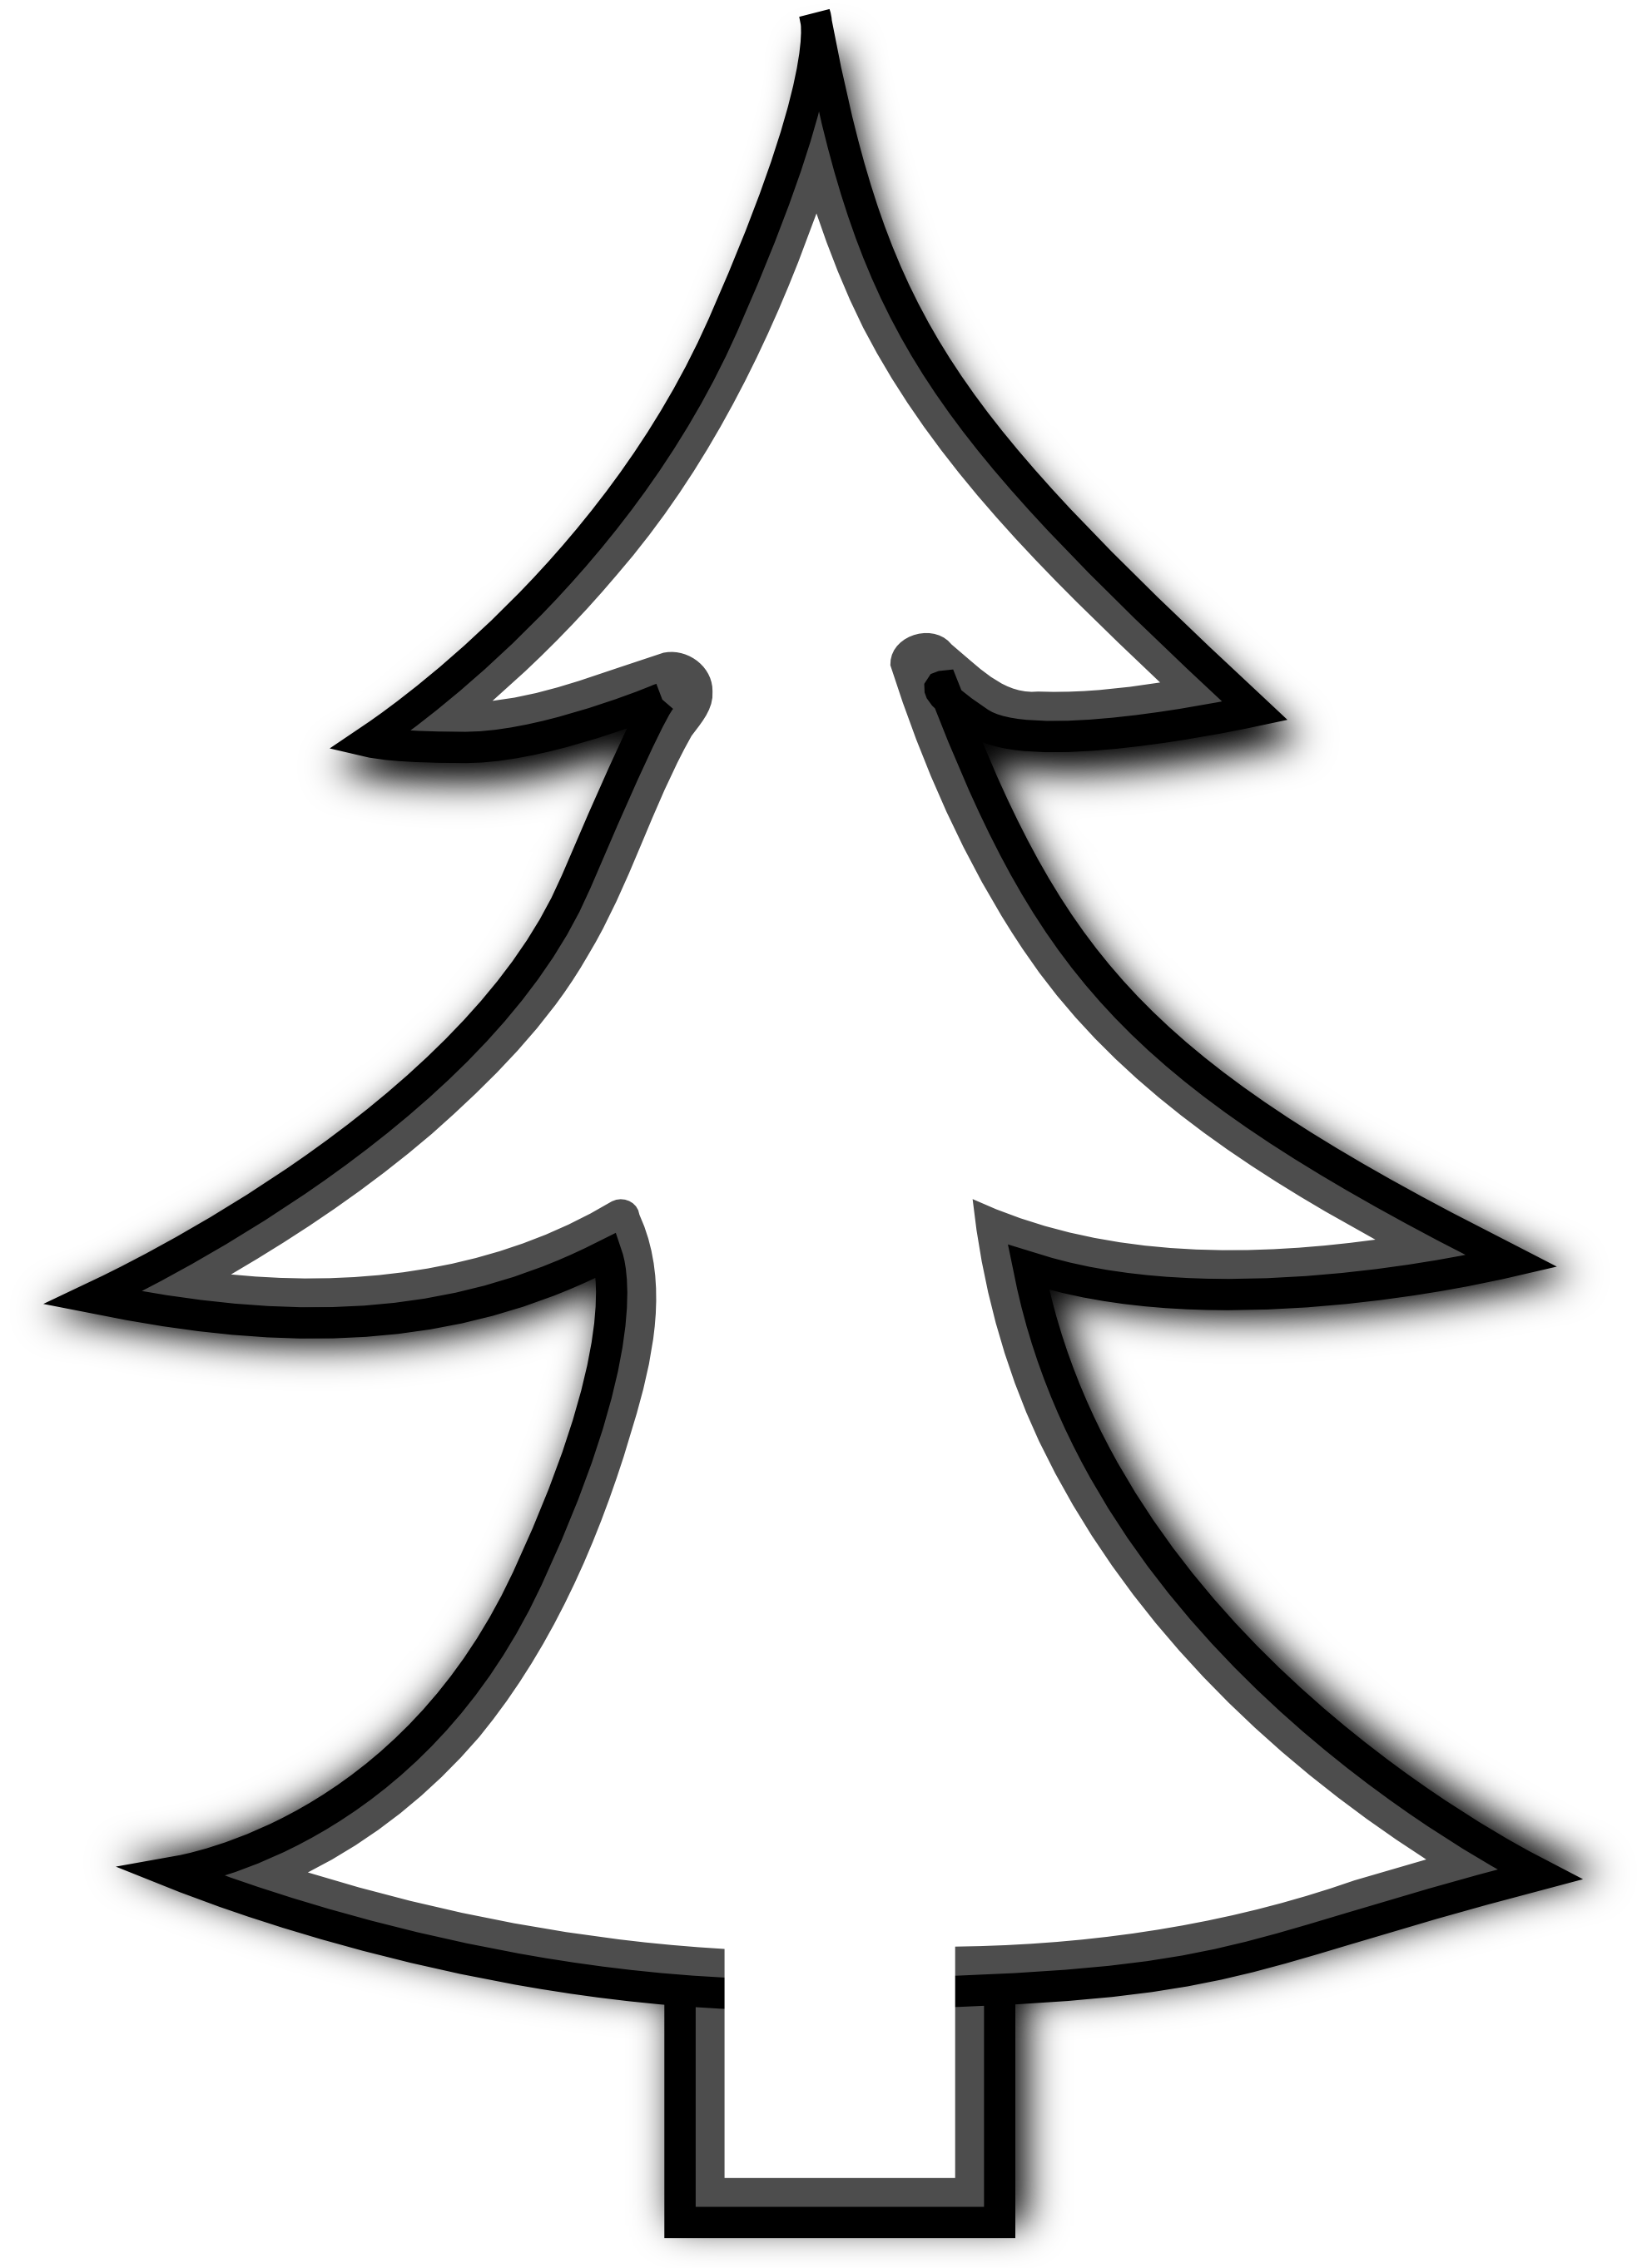 Bare tree black and white clipart jpg freeuse library baby nursery ~ Winning Clip Art Black And White Xmas Trees Clipart ... jpg freeuse library